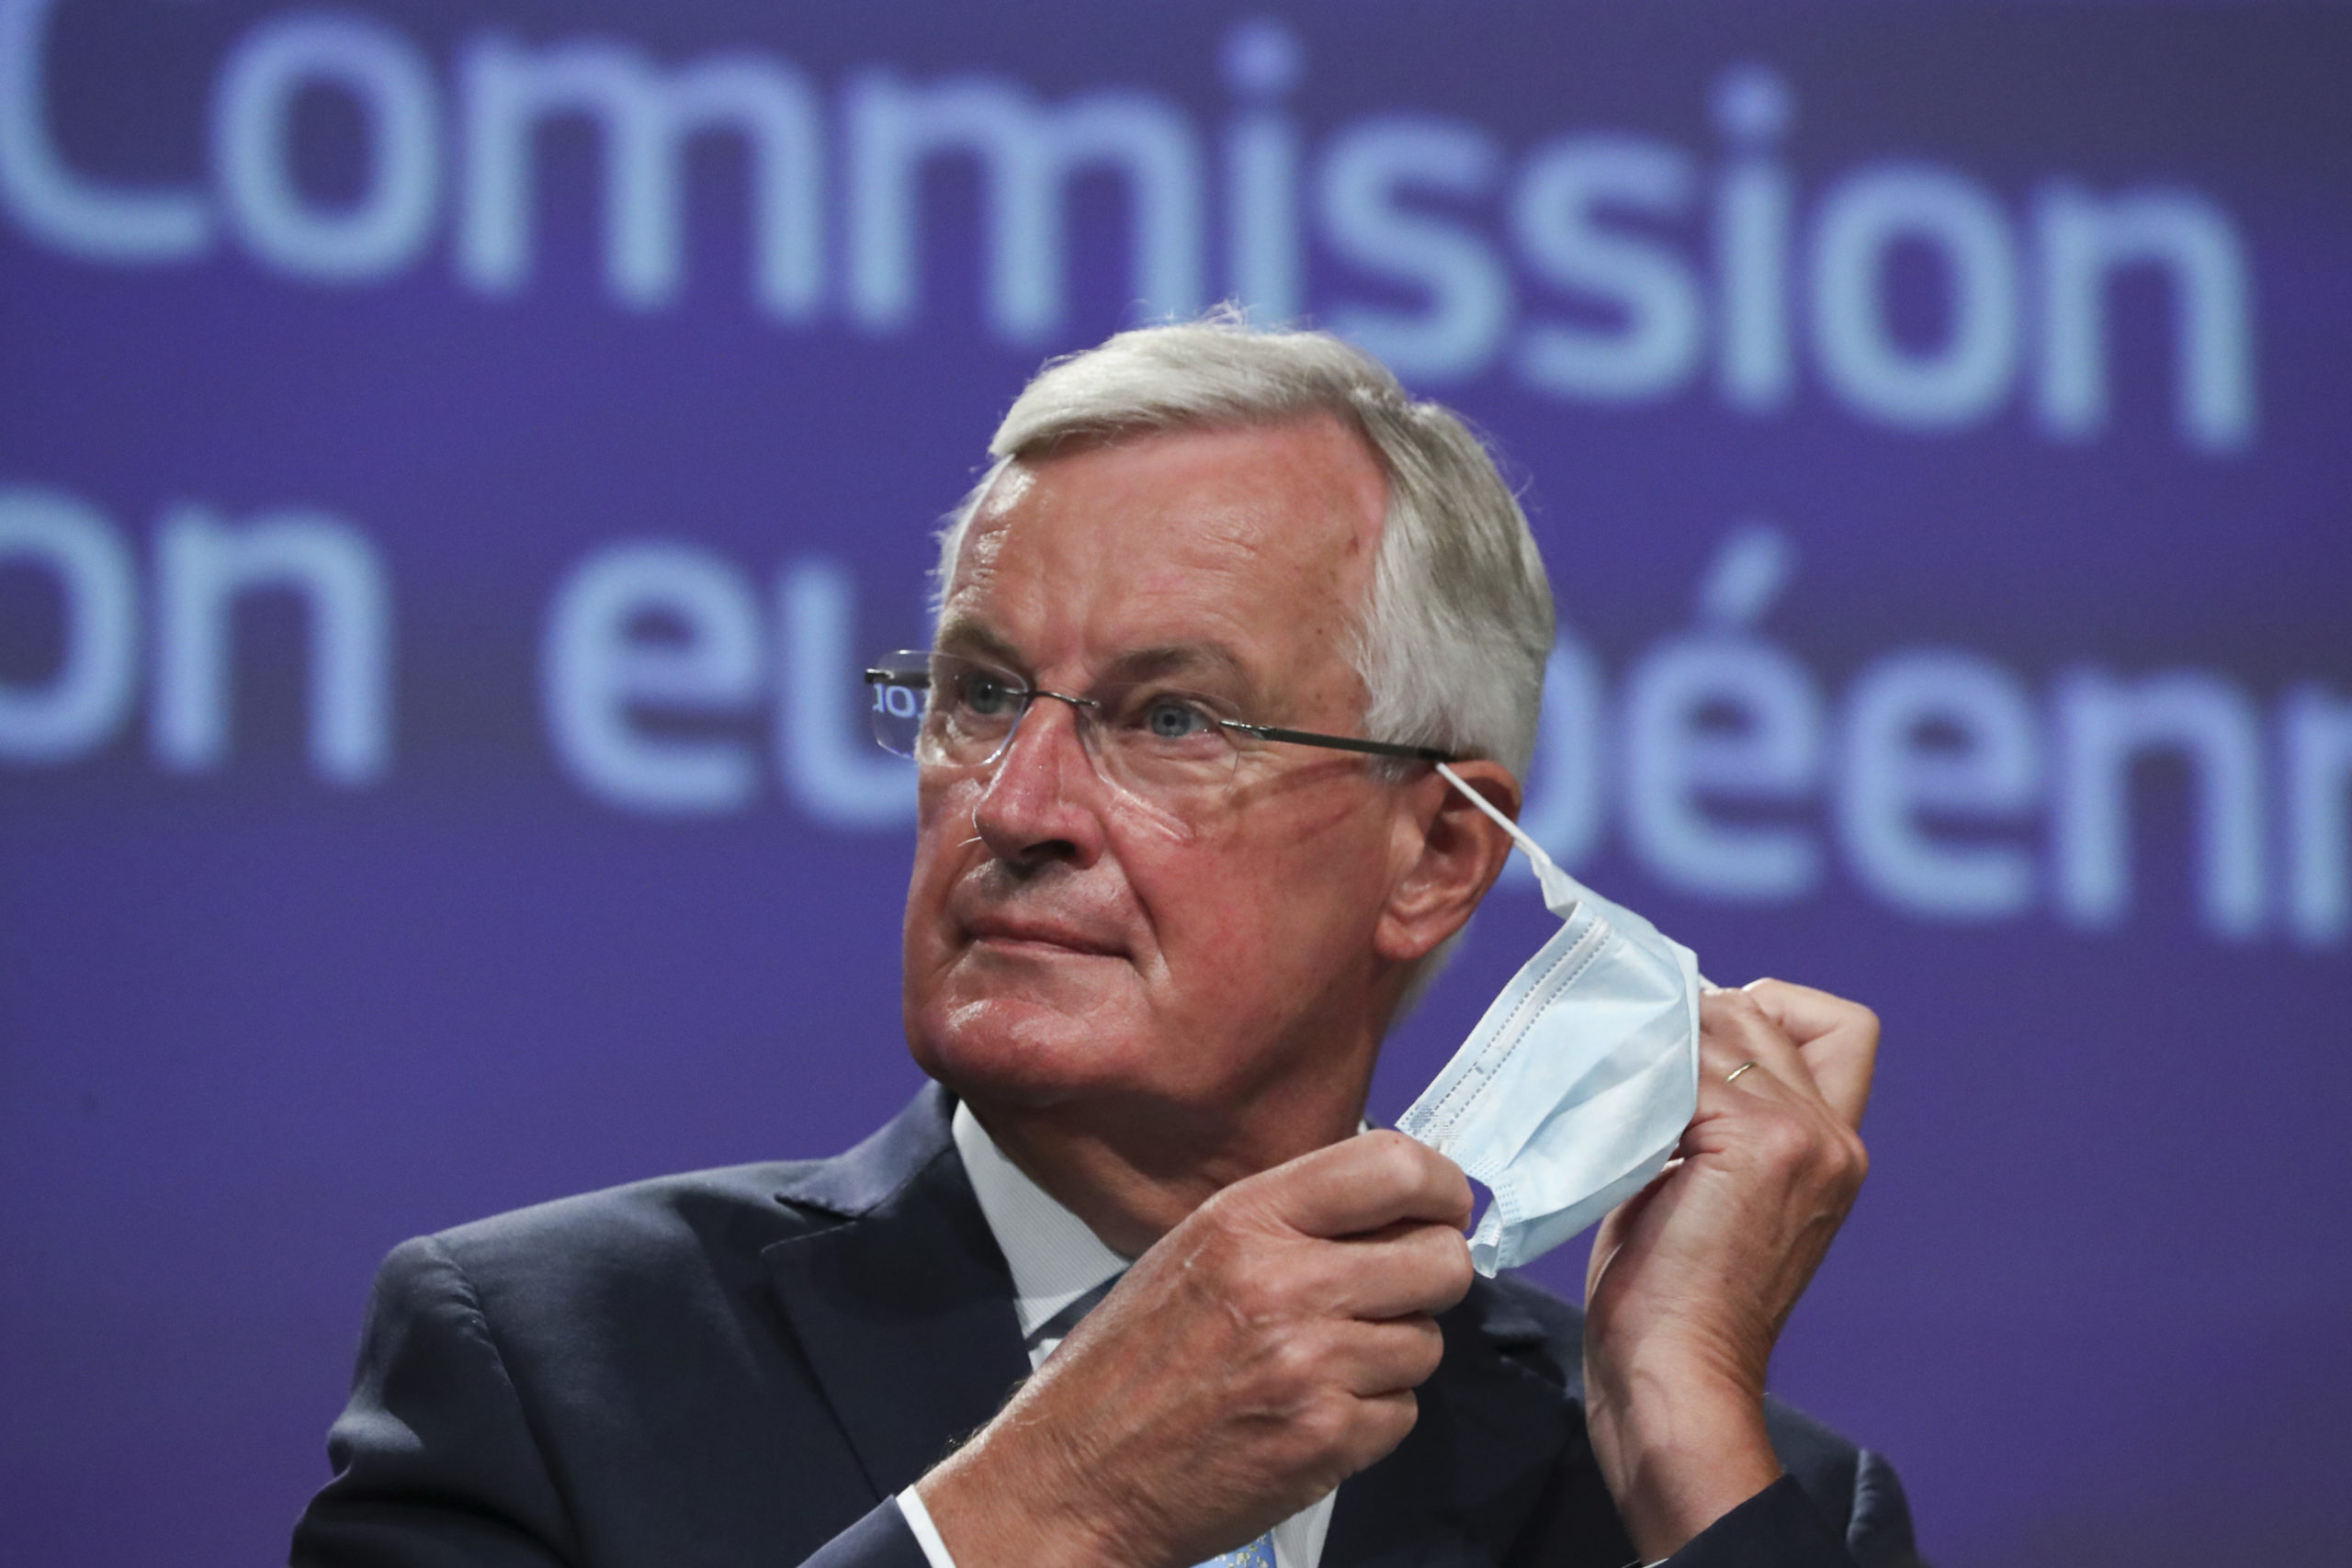 Photo of Brexit chief Michel Barnier says hes worried about difficult negotiations